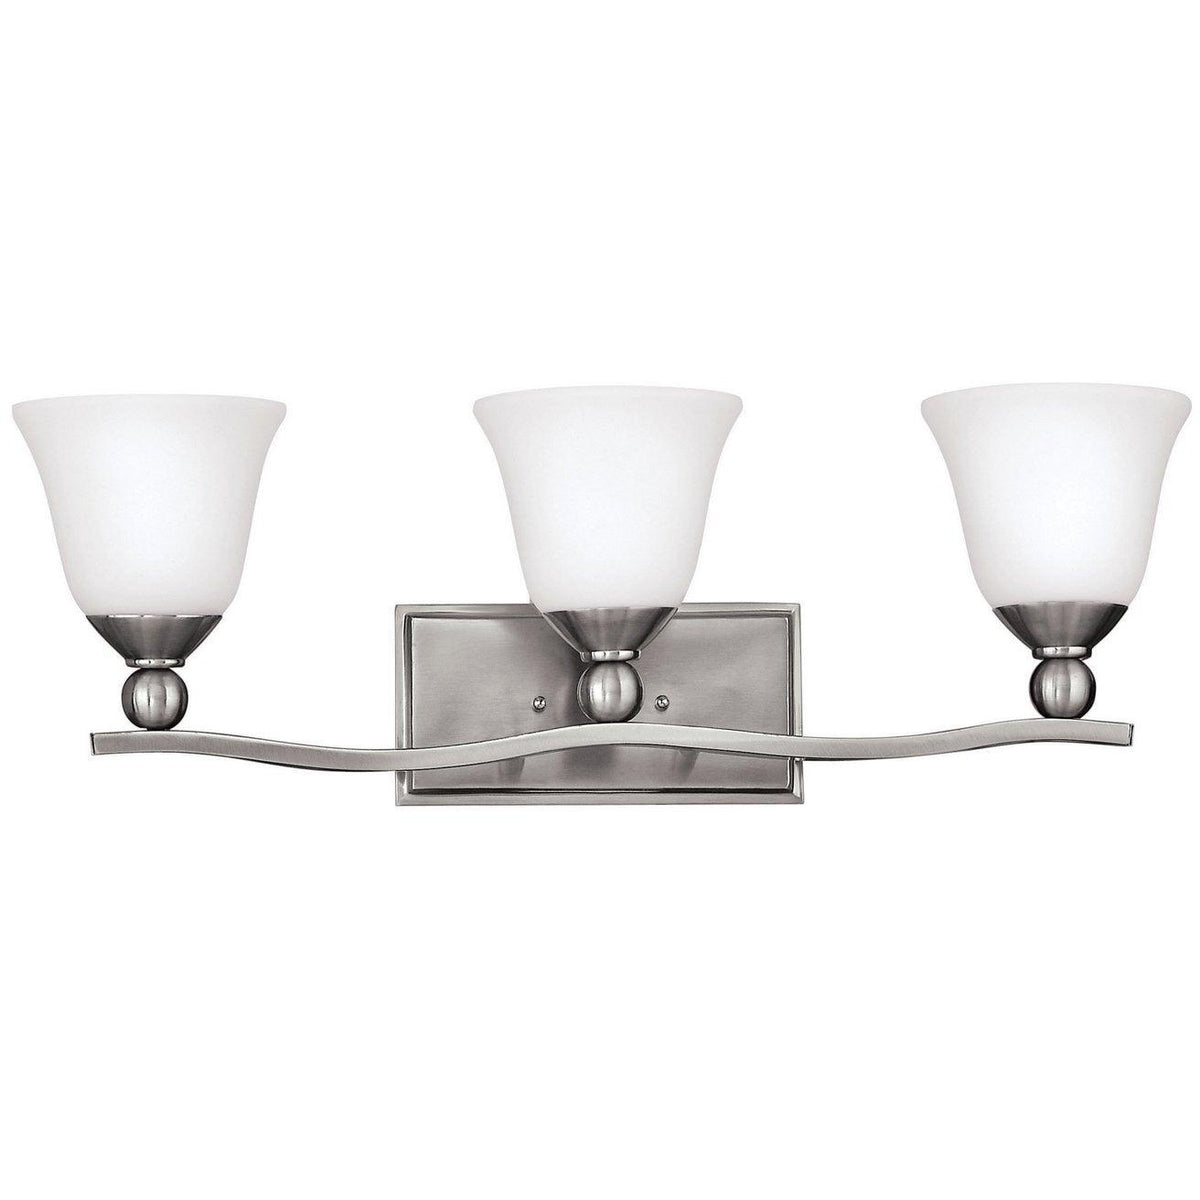 Hinkley Canada - 5893BN - Three Light Bath - Bolla - Brushed Nickel